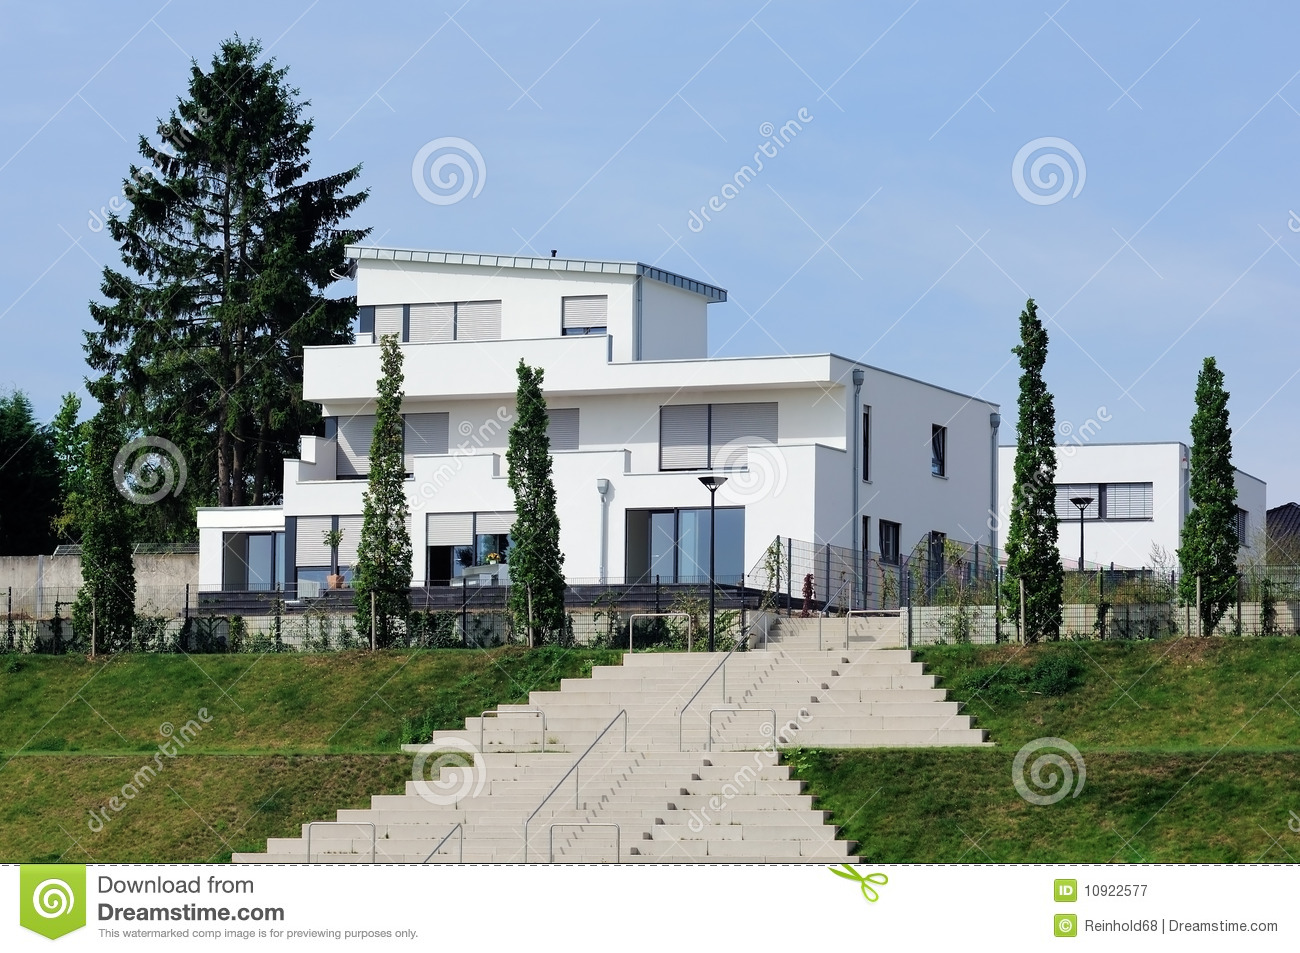 Photographie stock libre de droits modern white house image 10922577 for Maison moderne blanche